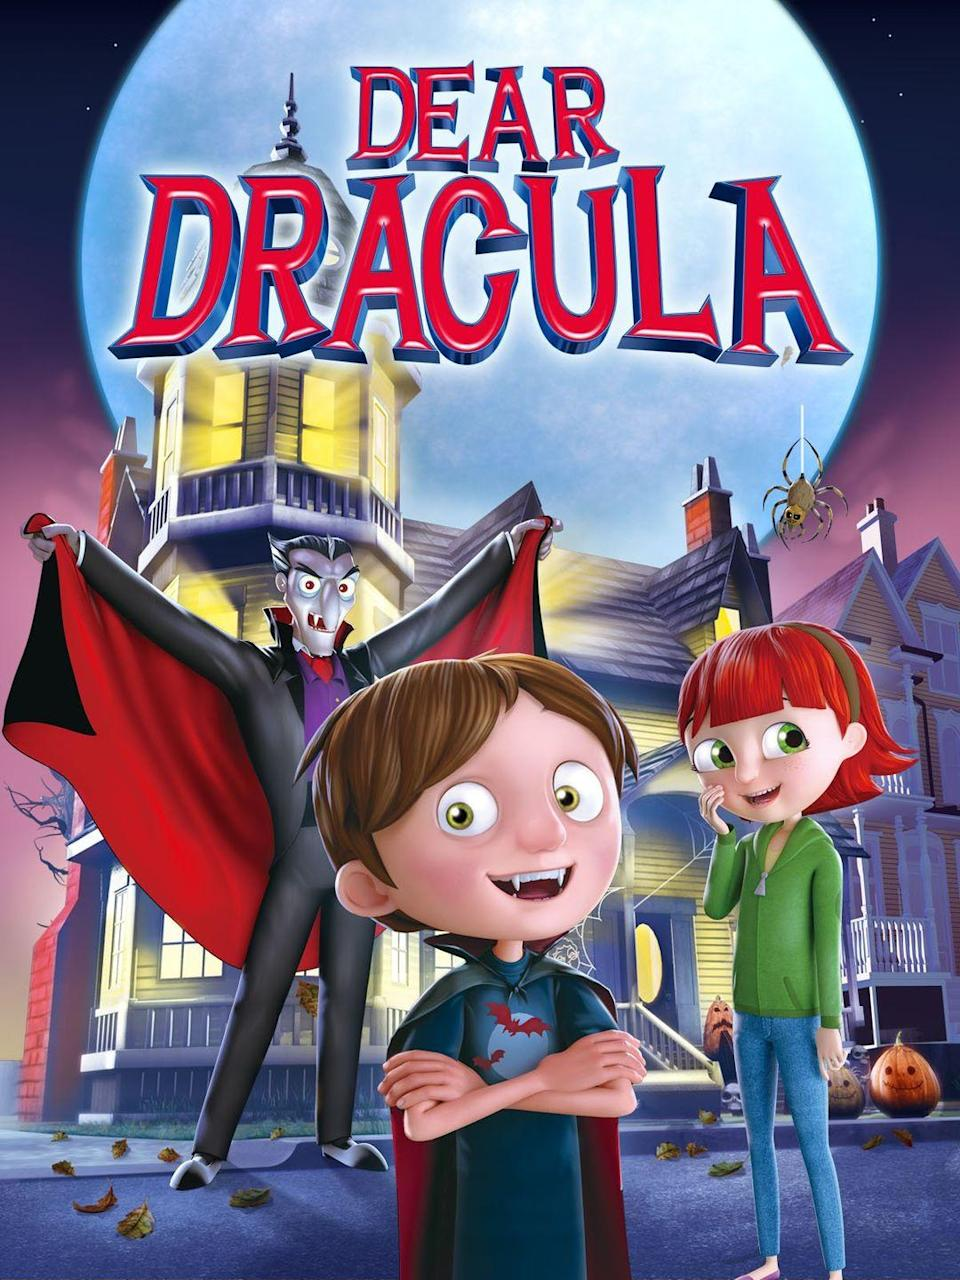 "<p>After asking his grandma for a Dracula action figure, Sam is thrilled to see that the monster himself has decided to pay his house a visit.</p><p><a href=""https://www.netflix.com/watch/80081337"" rel=""nofollow noopener"" target=""_blank"" data-ylk=""slk:WATCH NOW"" class=""link rapid-noclick-resp"">WATCH NOW</a></p>"